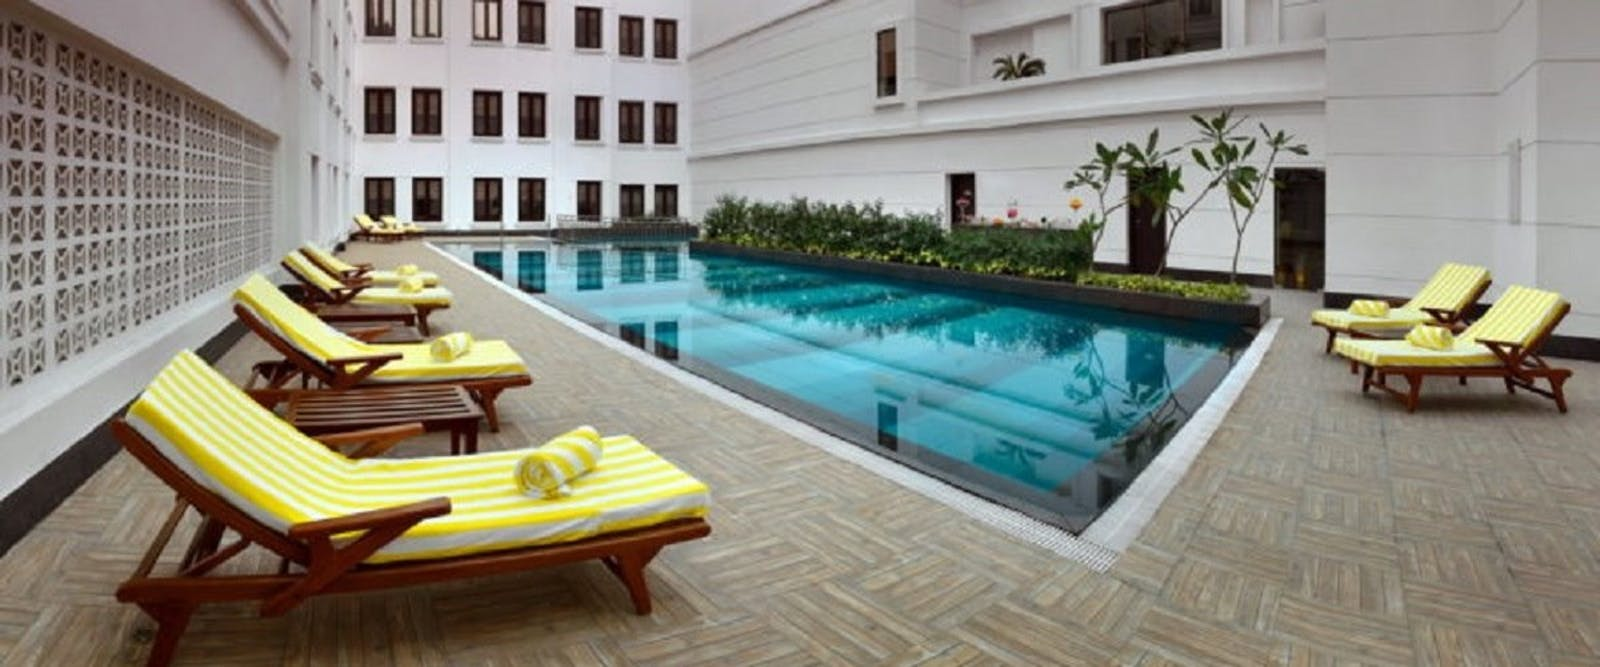 Poolside at The LaLit Great Eastern Calcutta